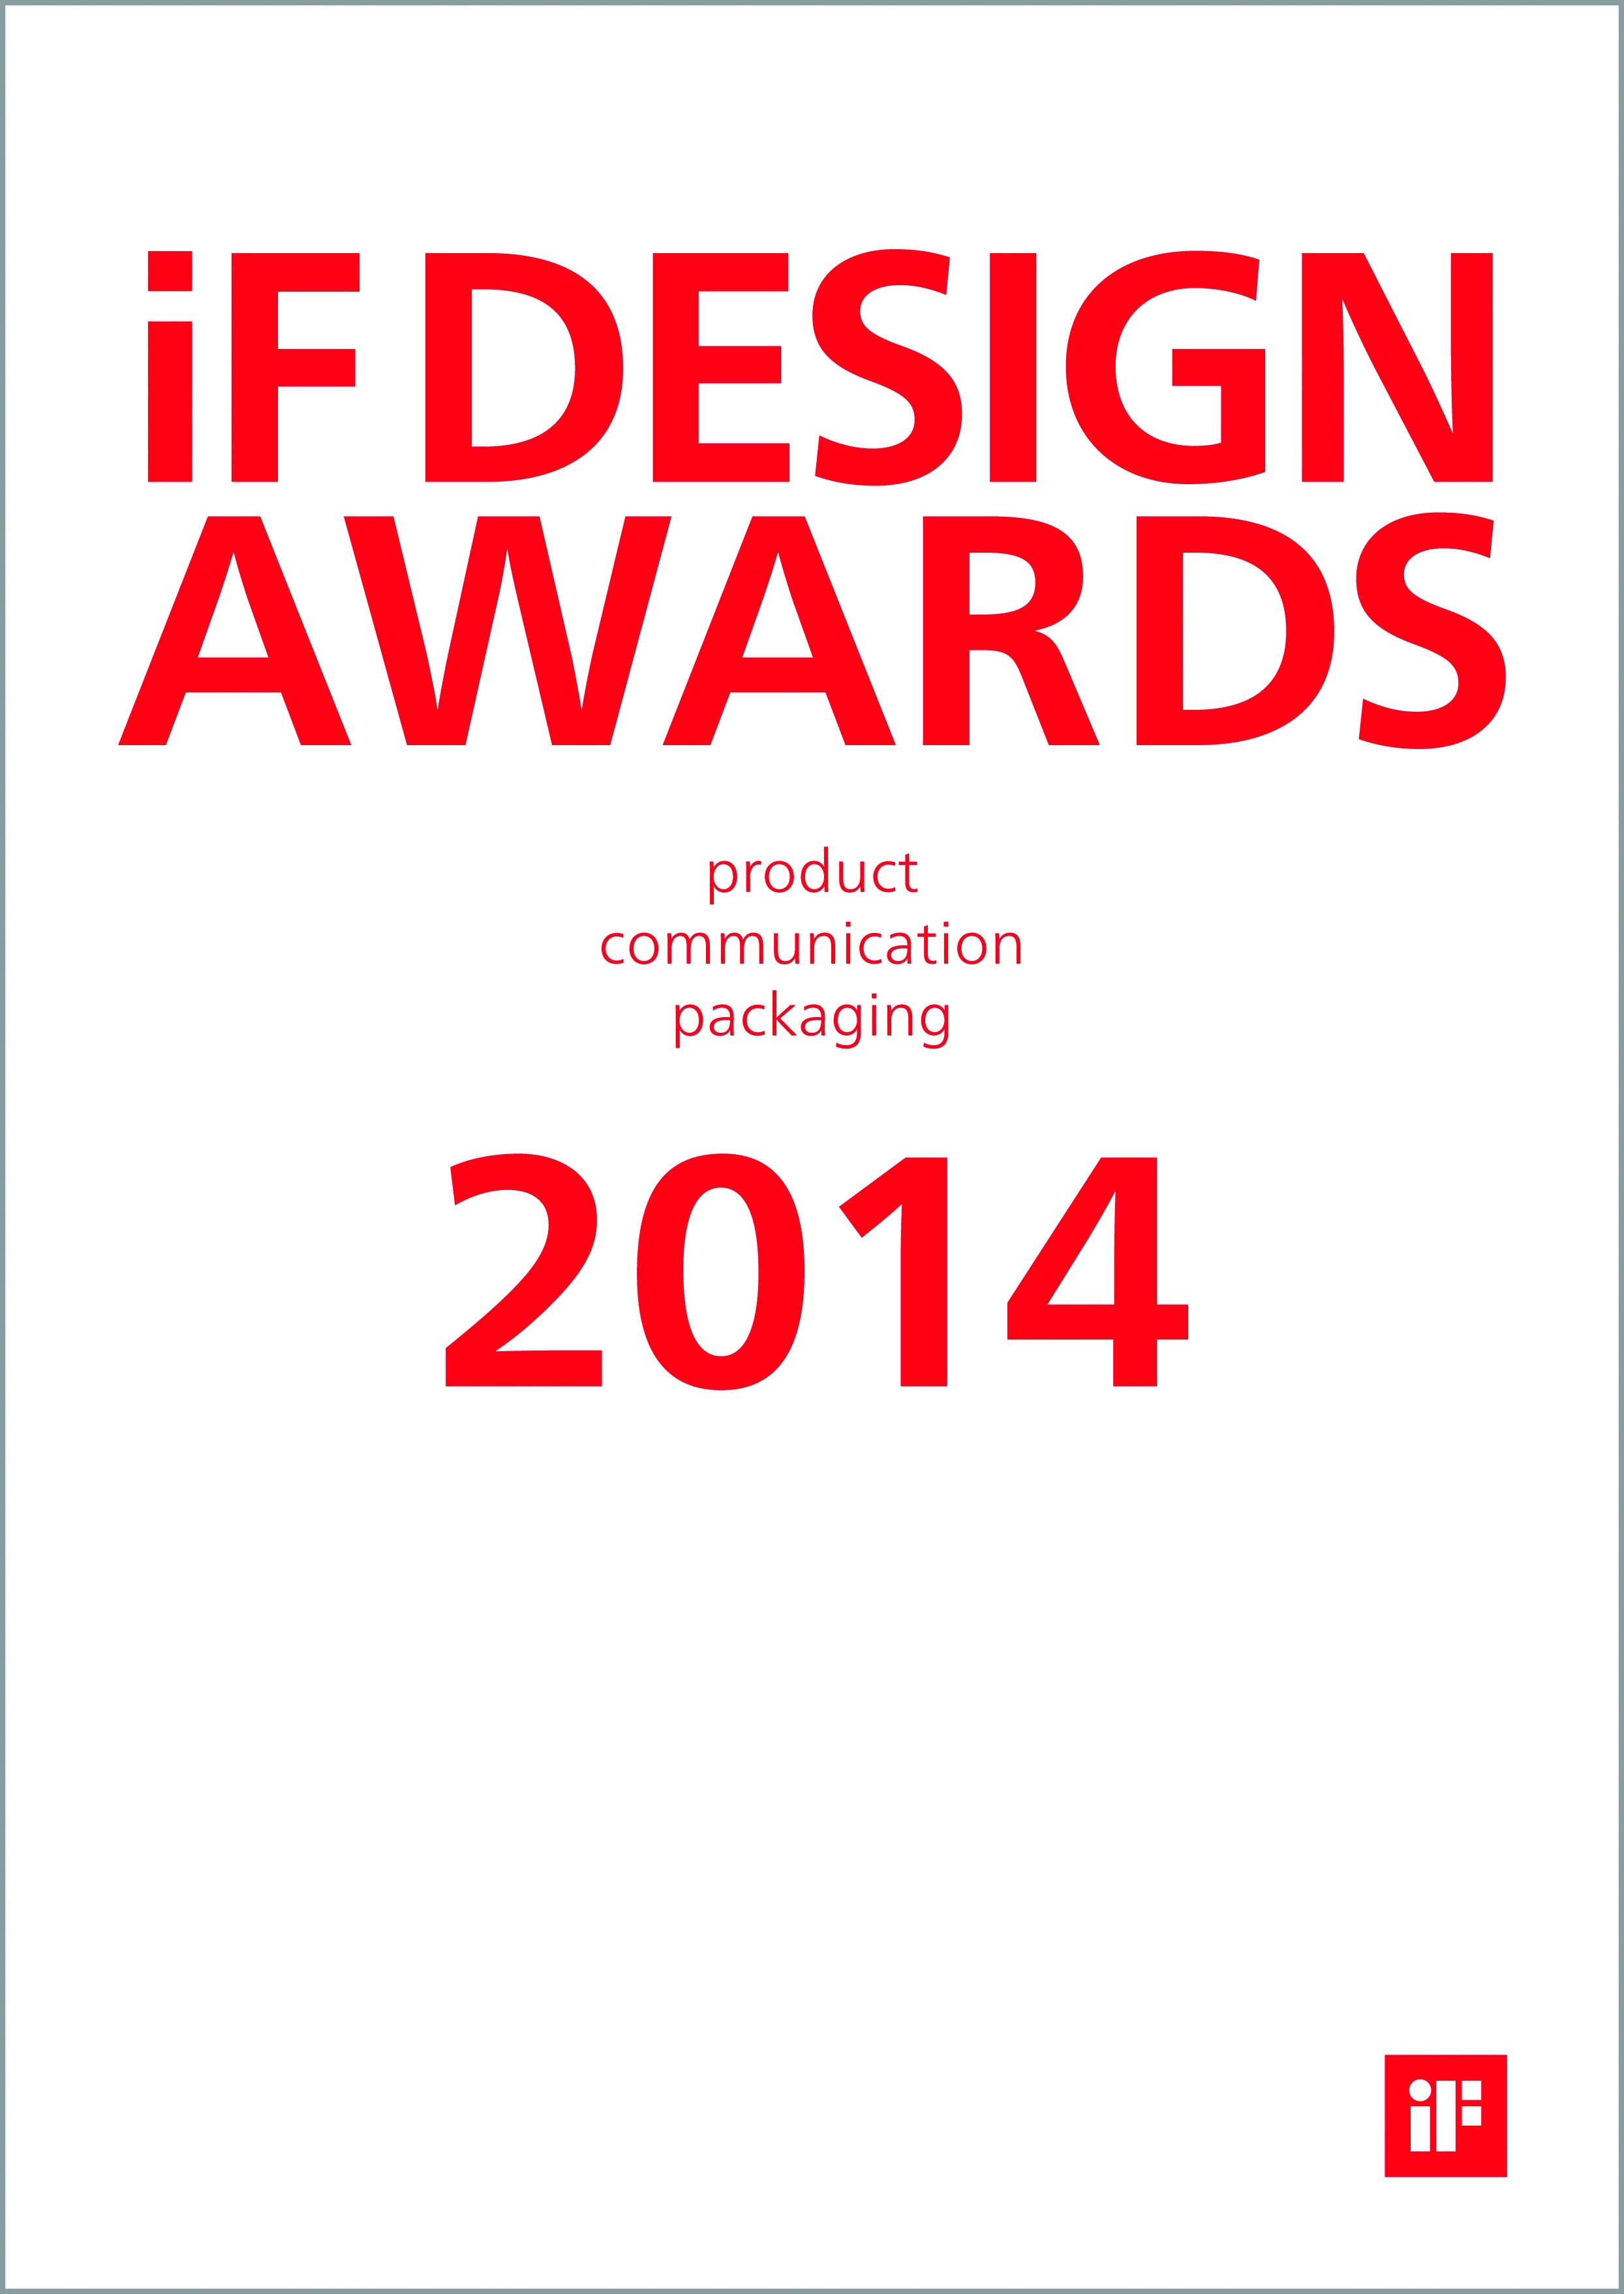 Browse Gardenista's collection of posts on Considered Design Awards to get ideas for your home garden, landscaping needs, or outdoor space which involve Considered Design Awards An icon we use to indicate a rightwards action. An icon we use to indicate a leftwards action.